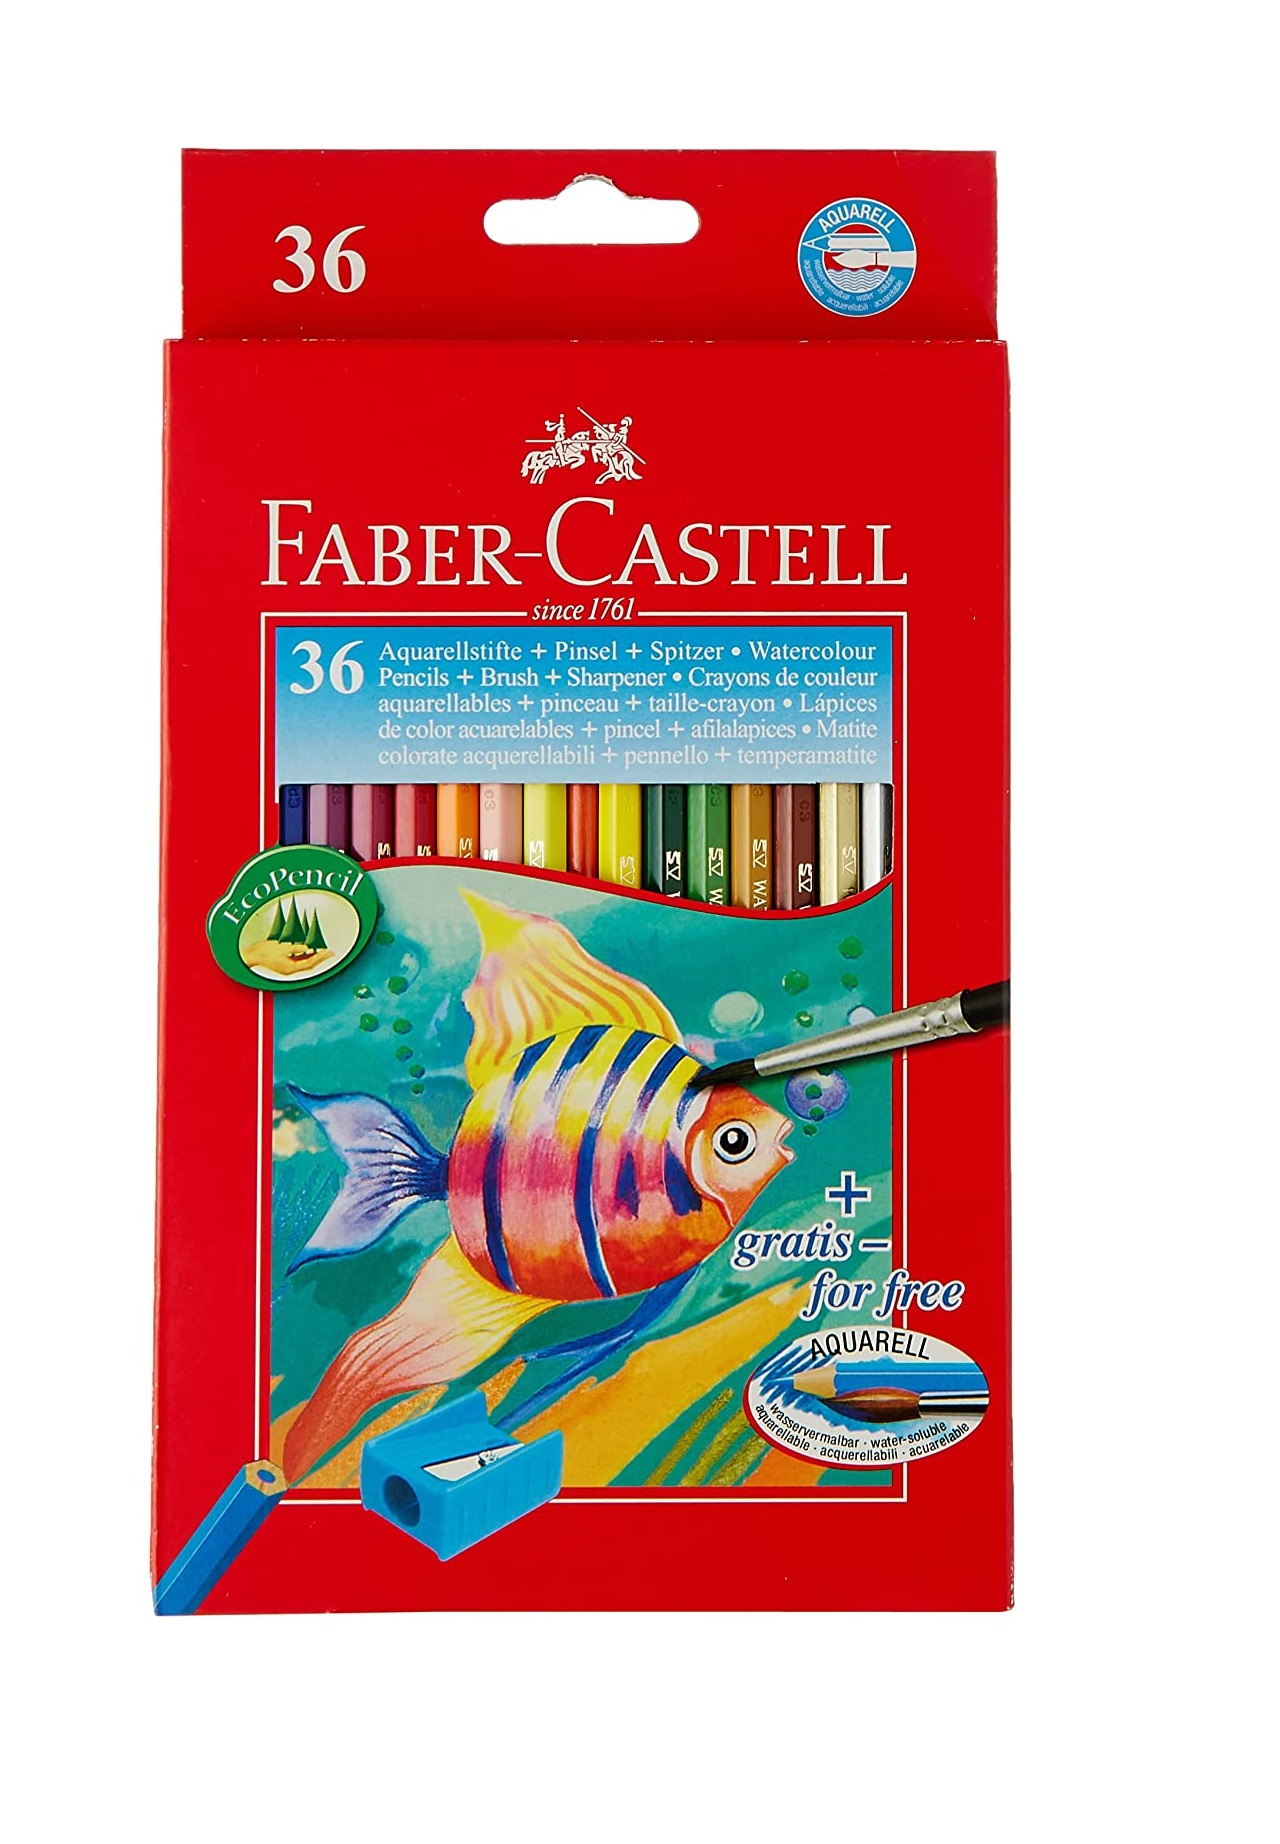 Faber-Castell Design Series Aquarelle Water Color Pencils - 36 Shades